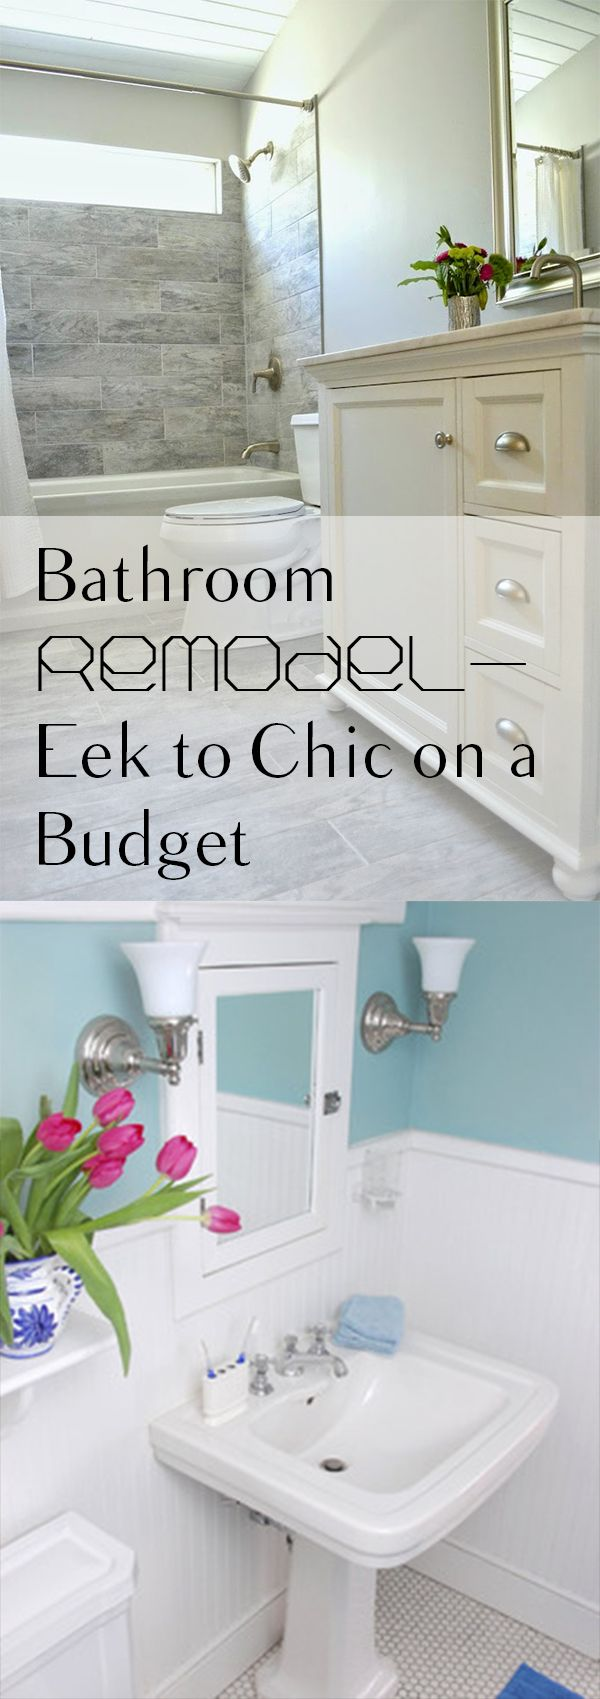 Best Images About Bathroom Idas On Pinterest Marbles -  bathroom renovation on a budget